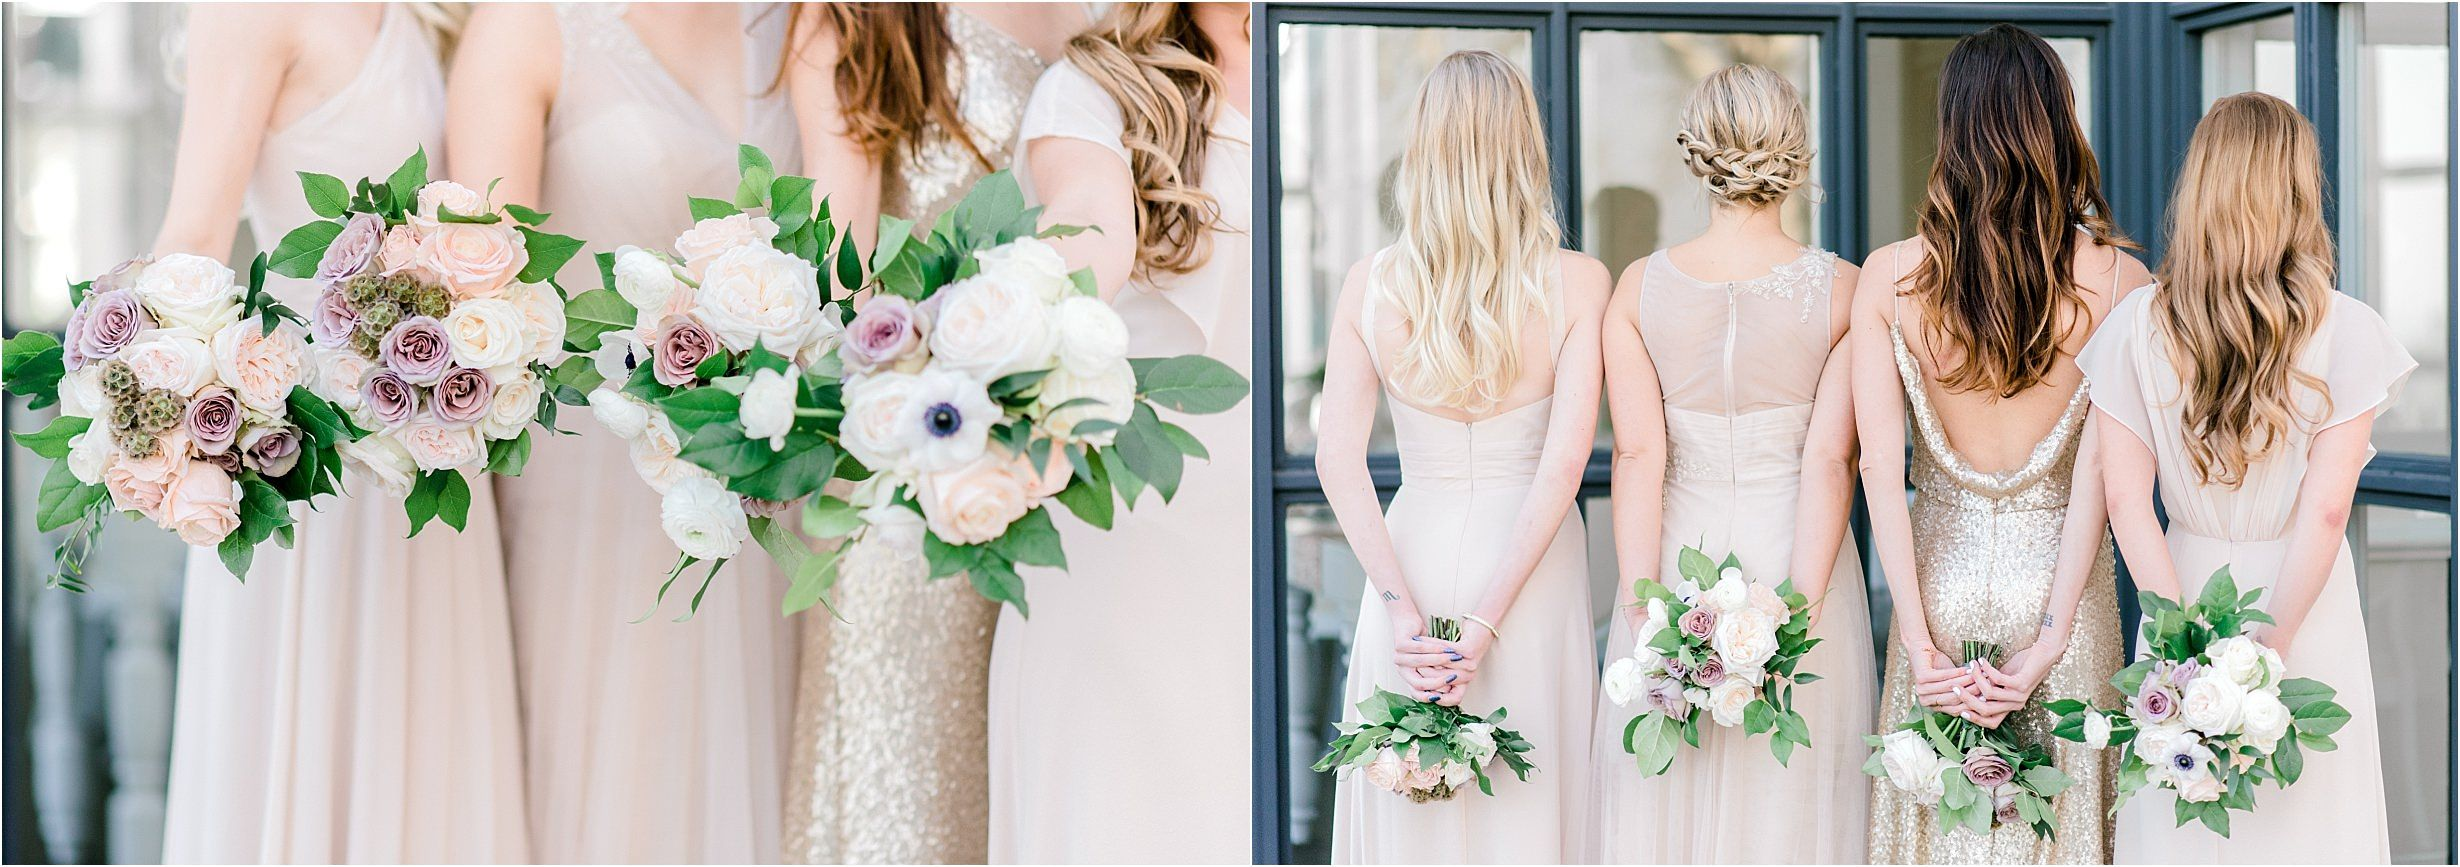 Bride With Bridesmaids At Summit House Southern California Wedding Elopement Photographer Bouquet La Oc Photography Maggie Smith